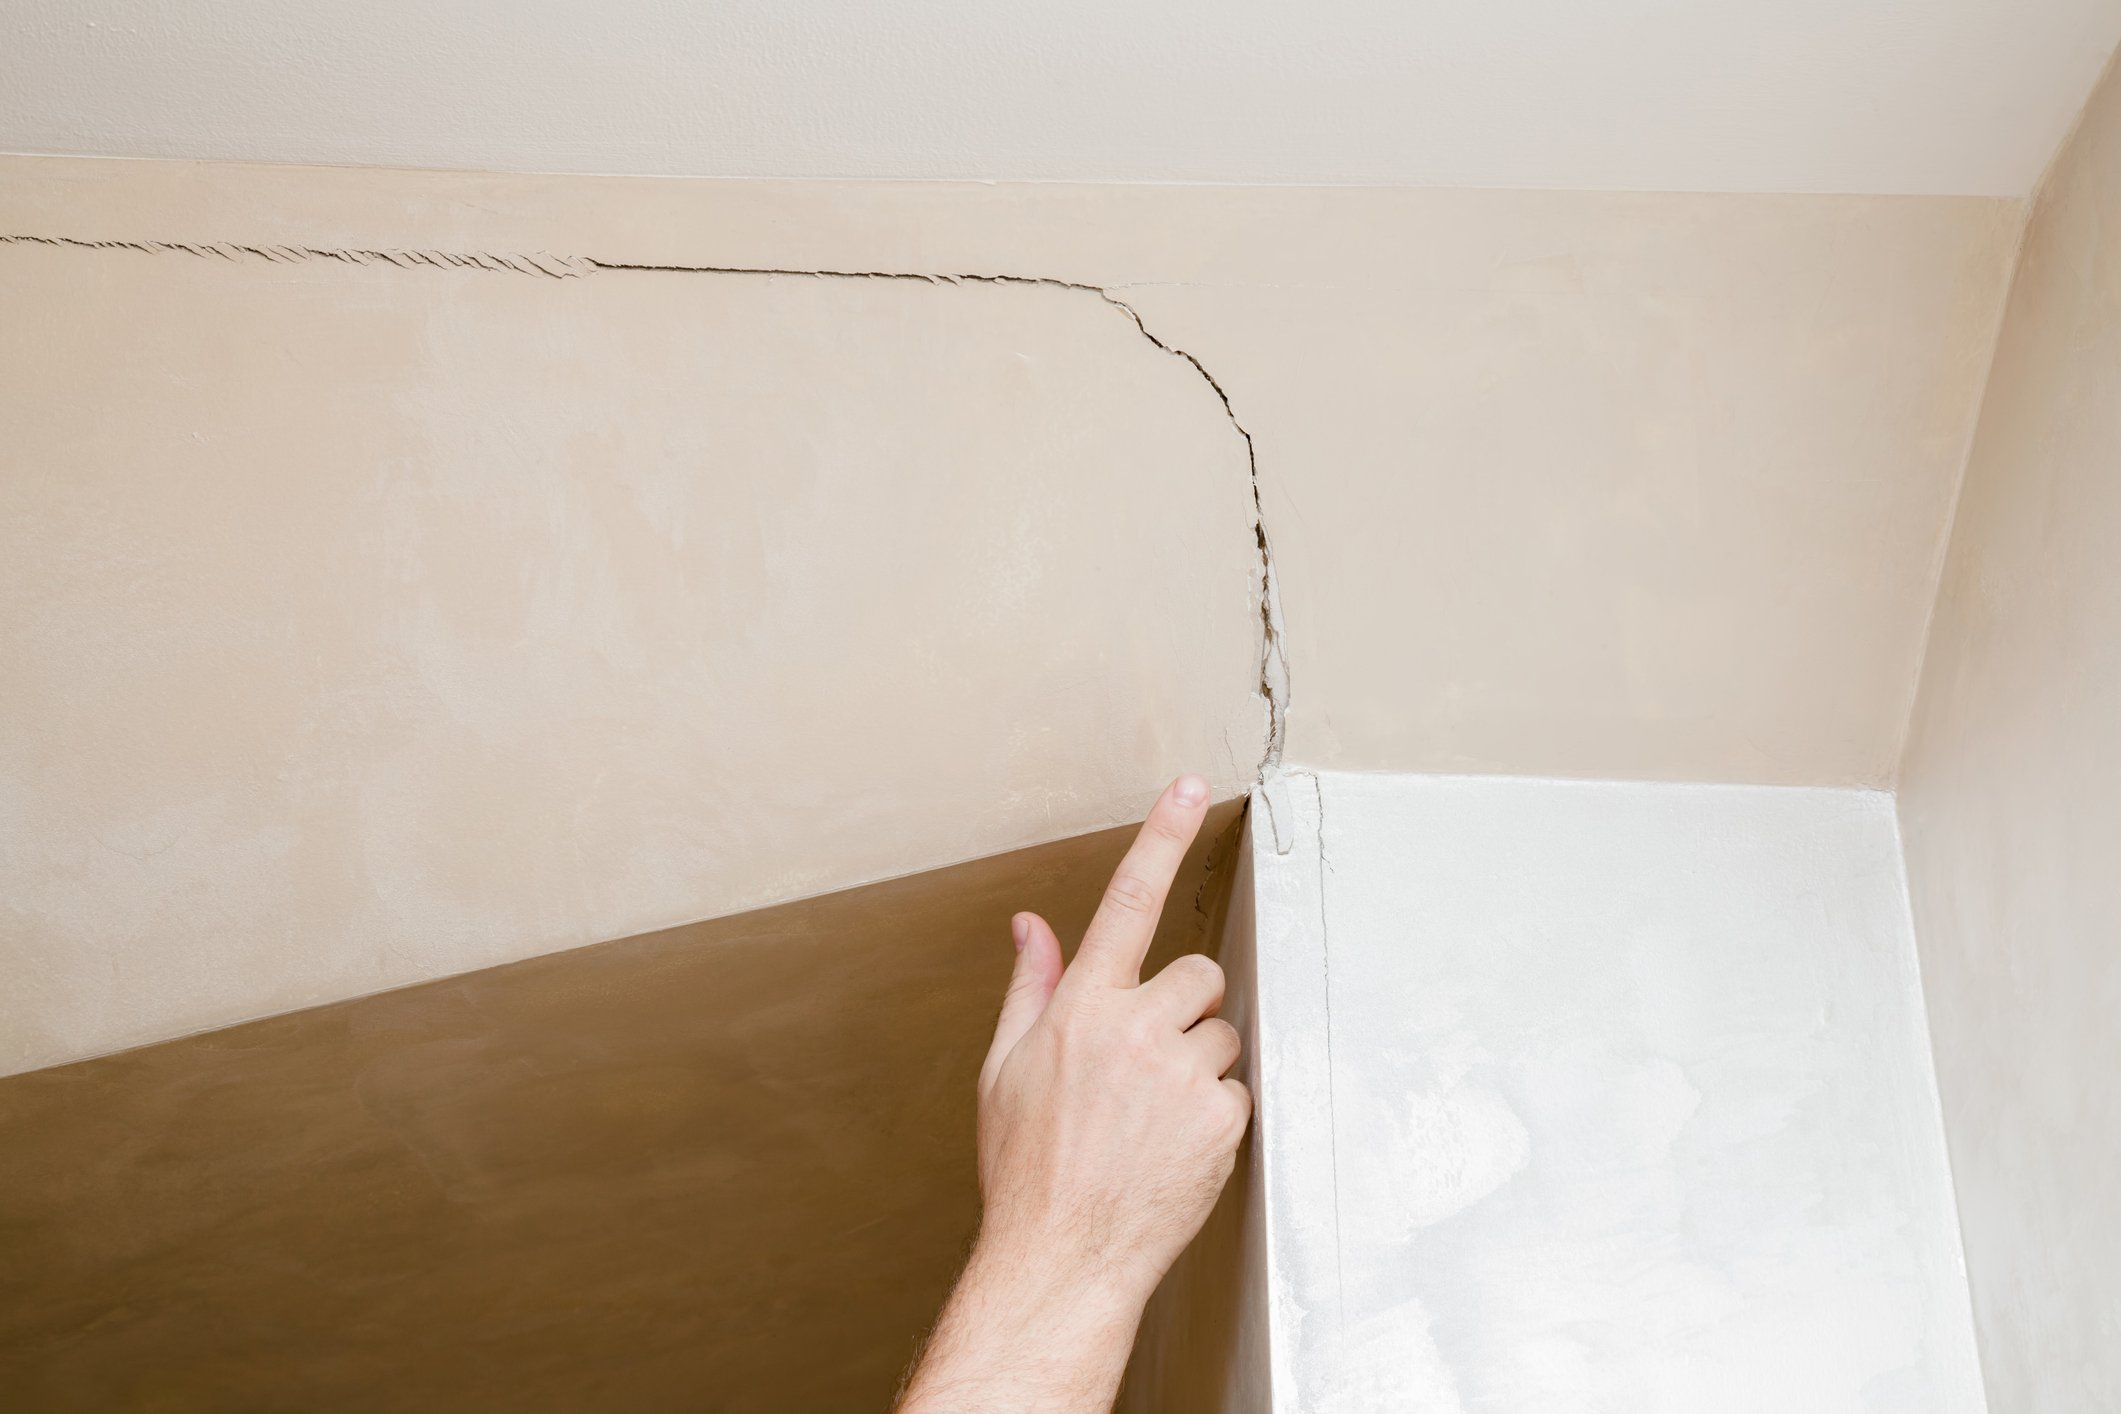 Cracks found on the home ceiling